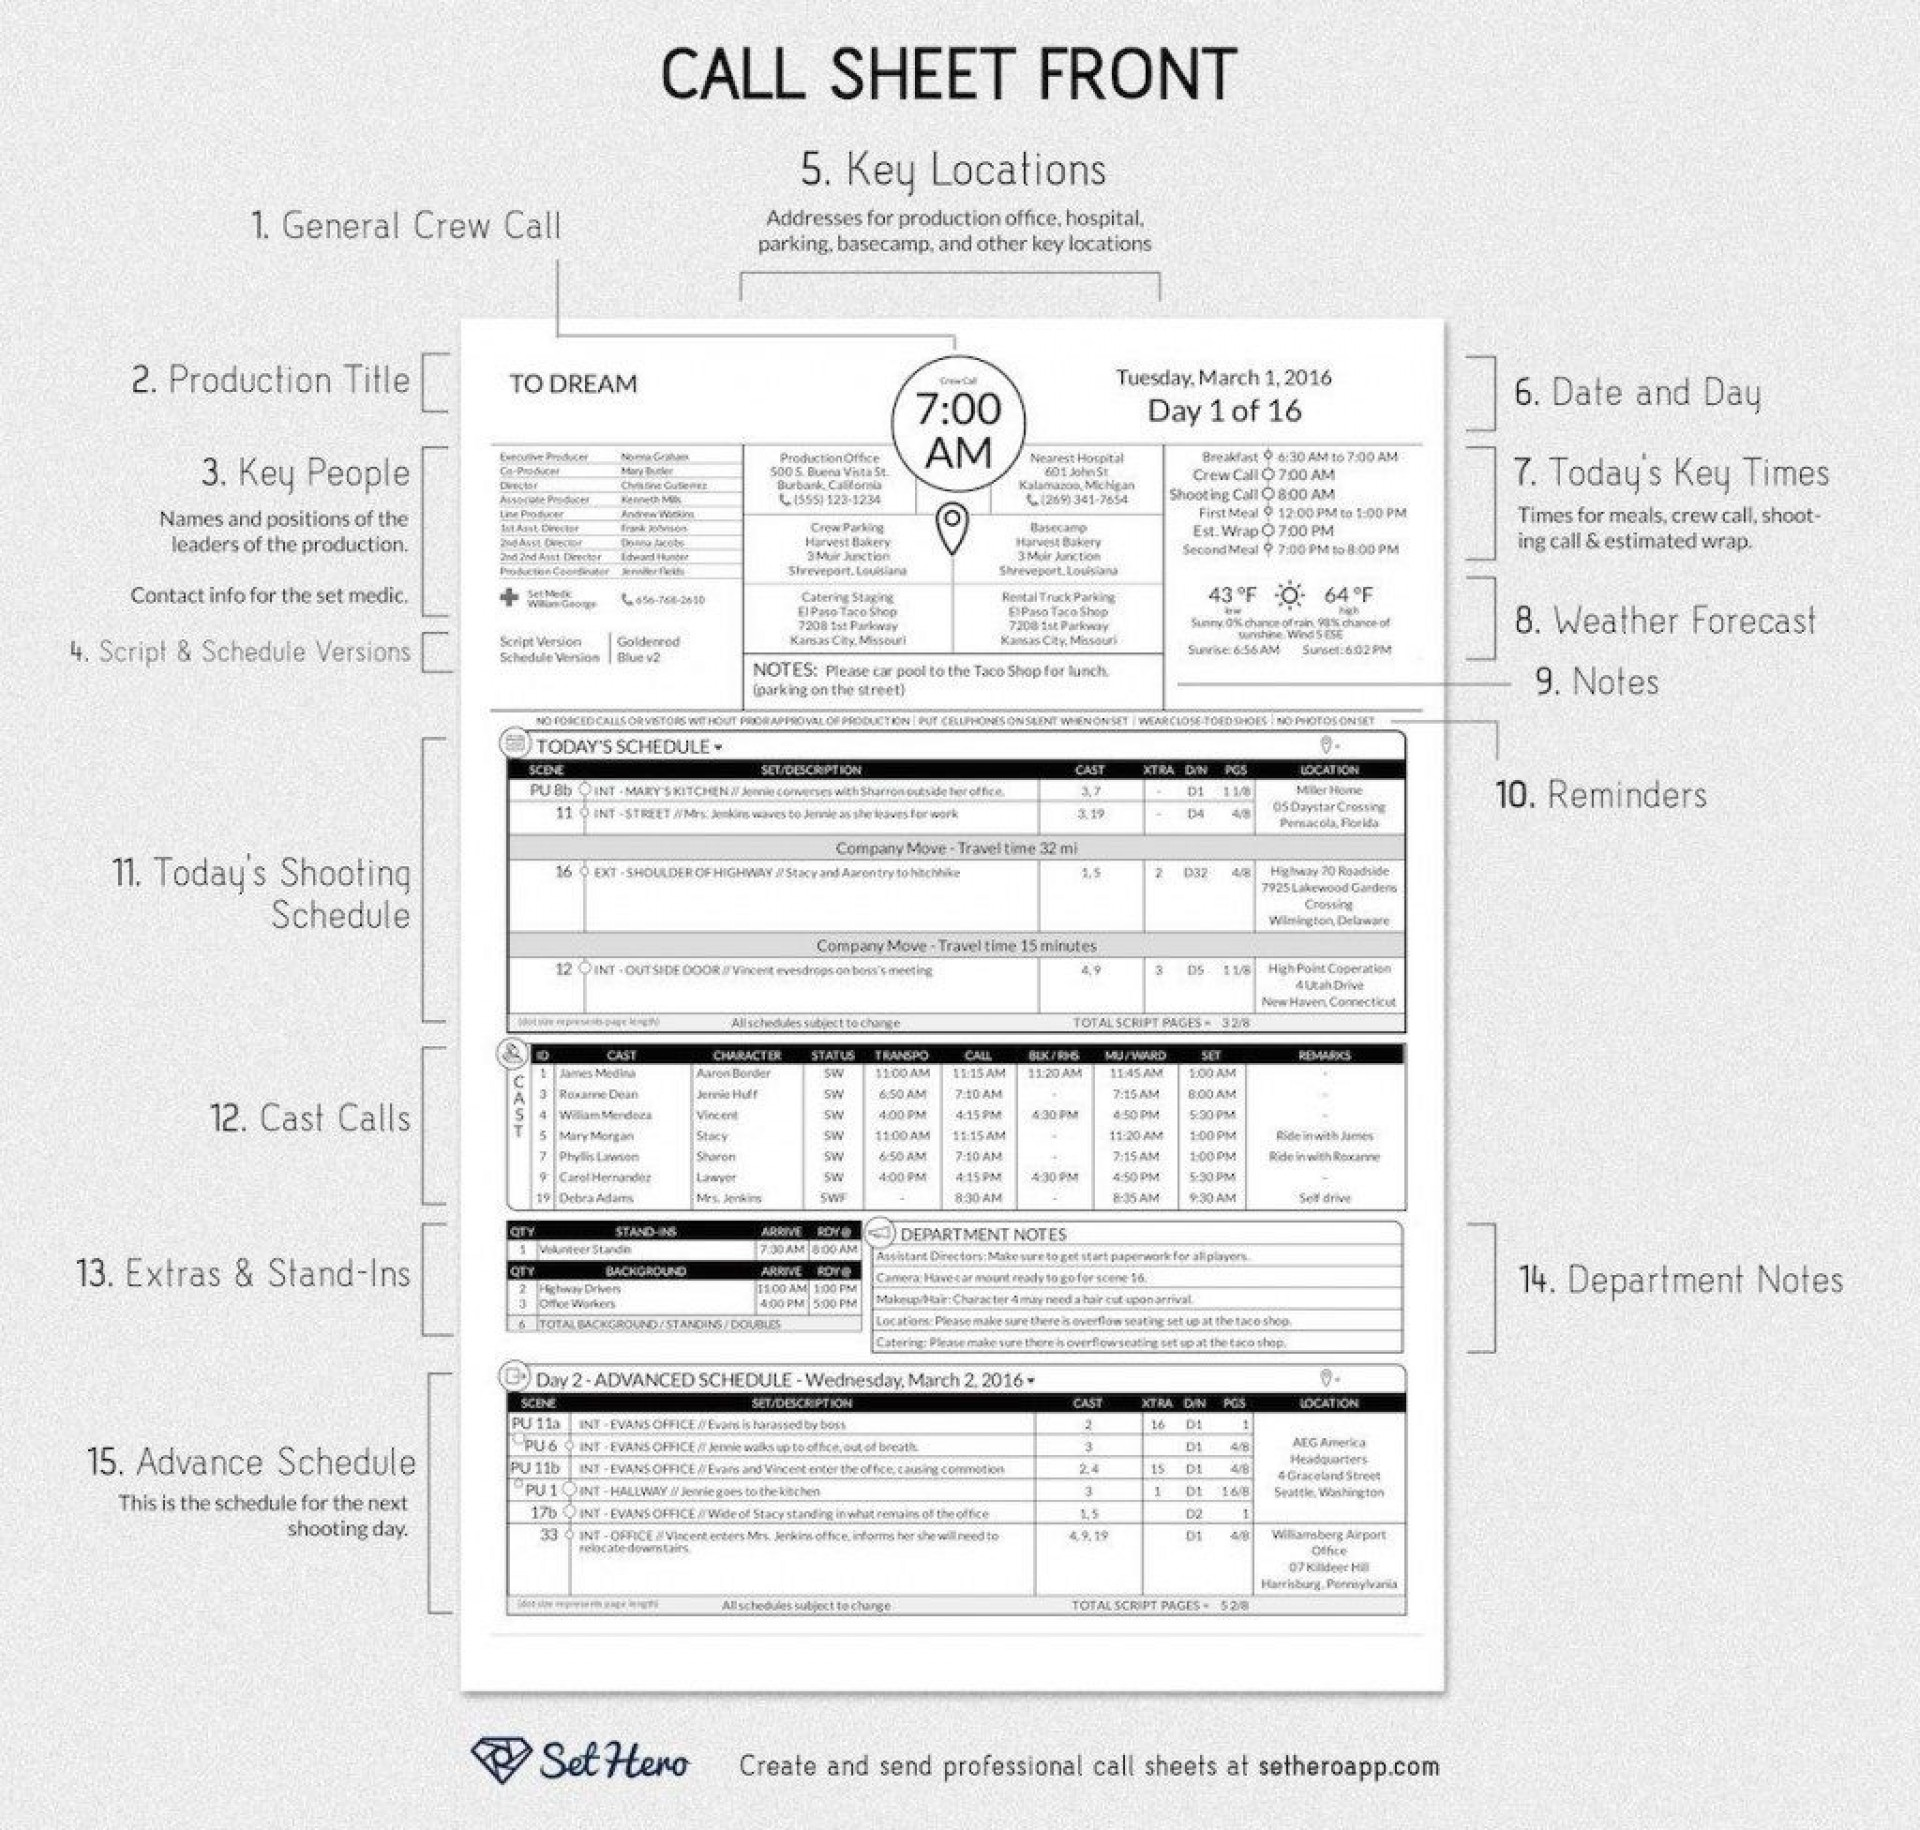 009 Beautiful Film Call Sheet Template Download Inspiration 1920